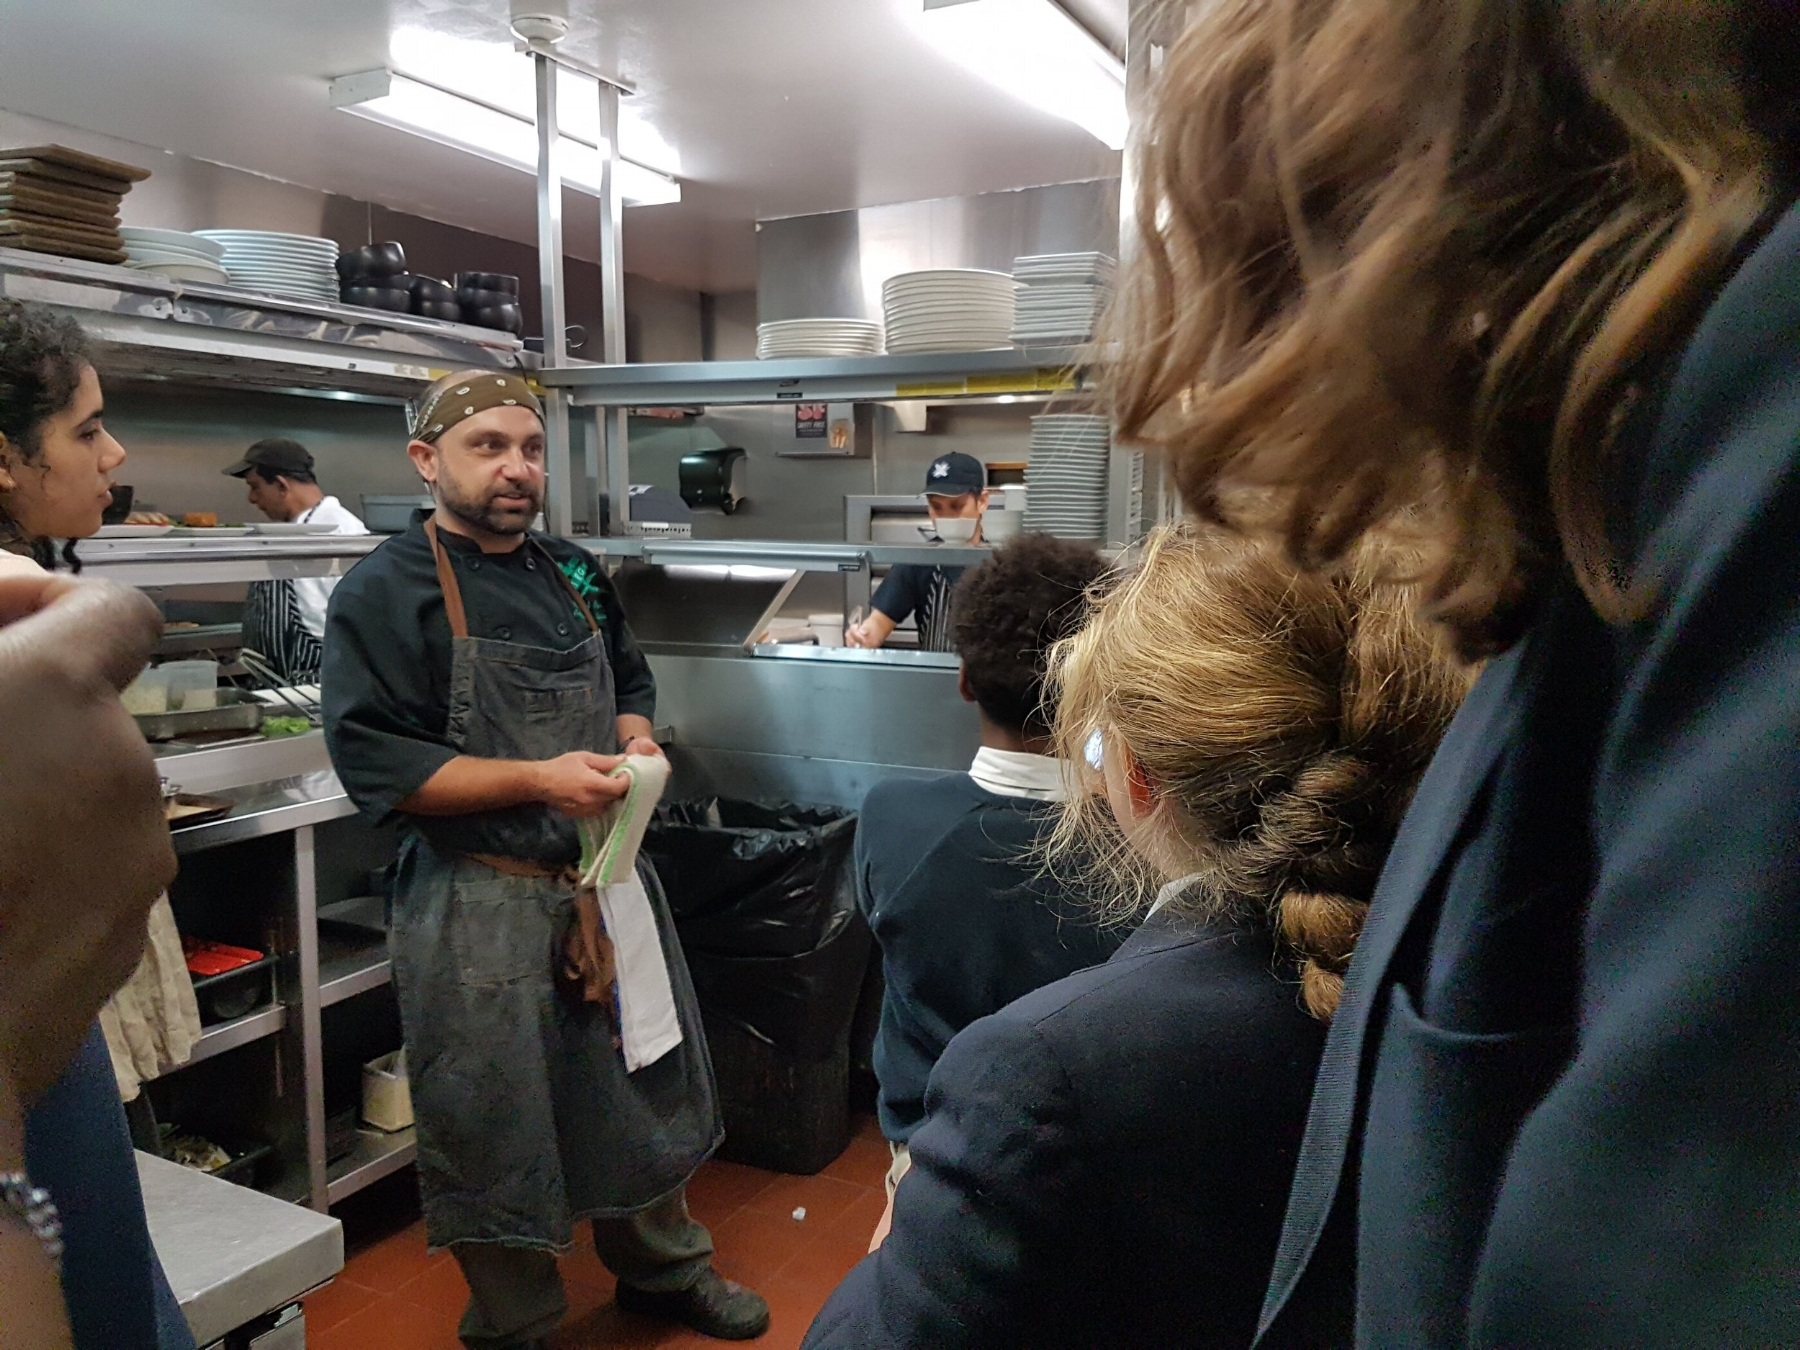 Touring the kitchen with Chef Andre